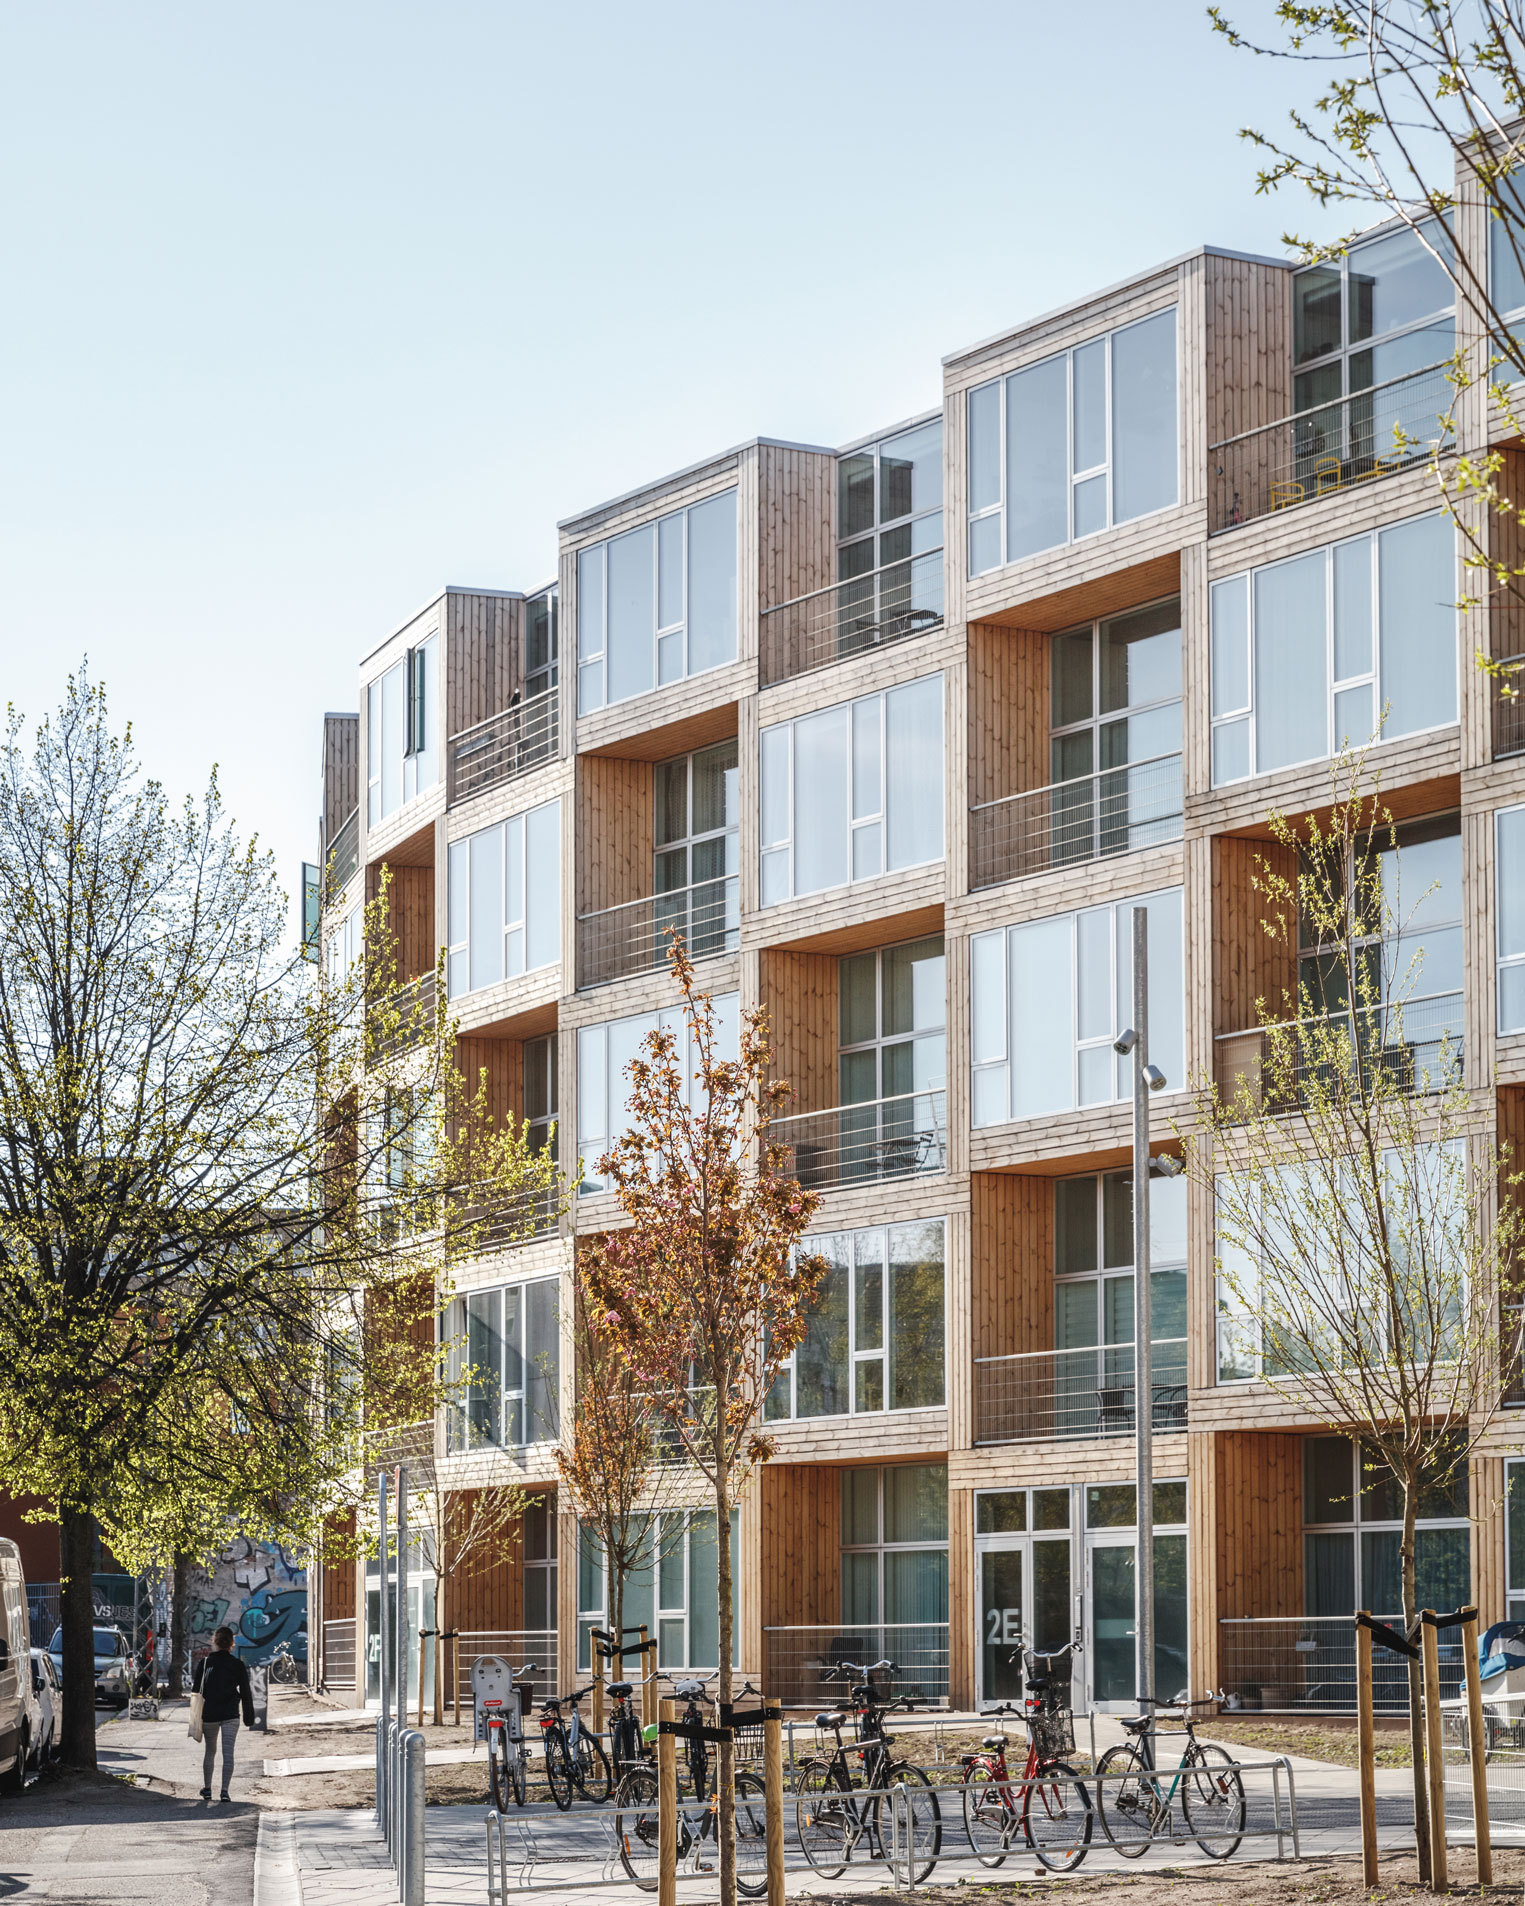 More Apartments Under Construction In Warner Center: Modular Constructed Affordable Housing In Copenhagen